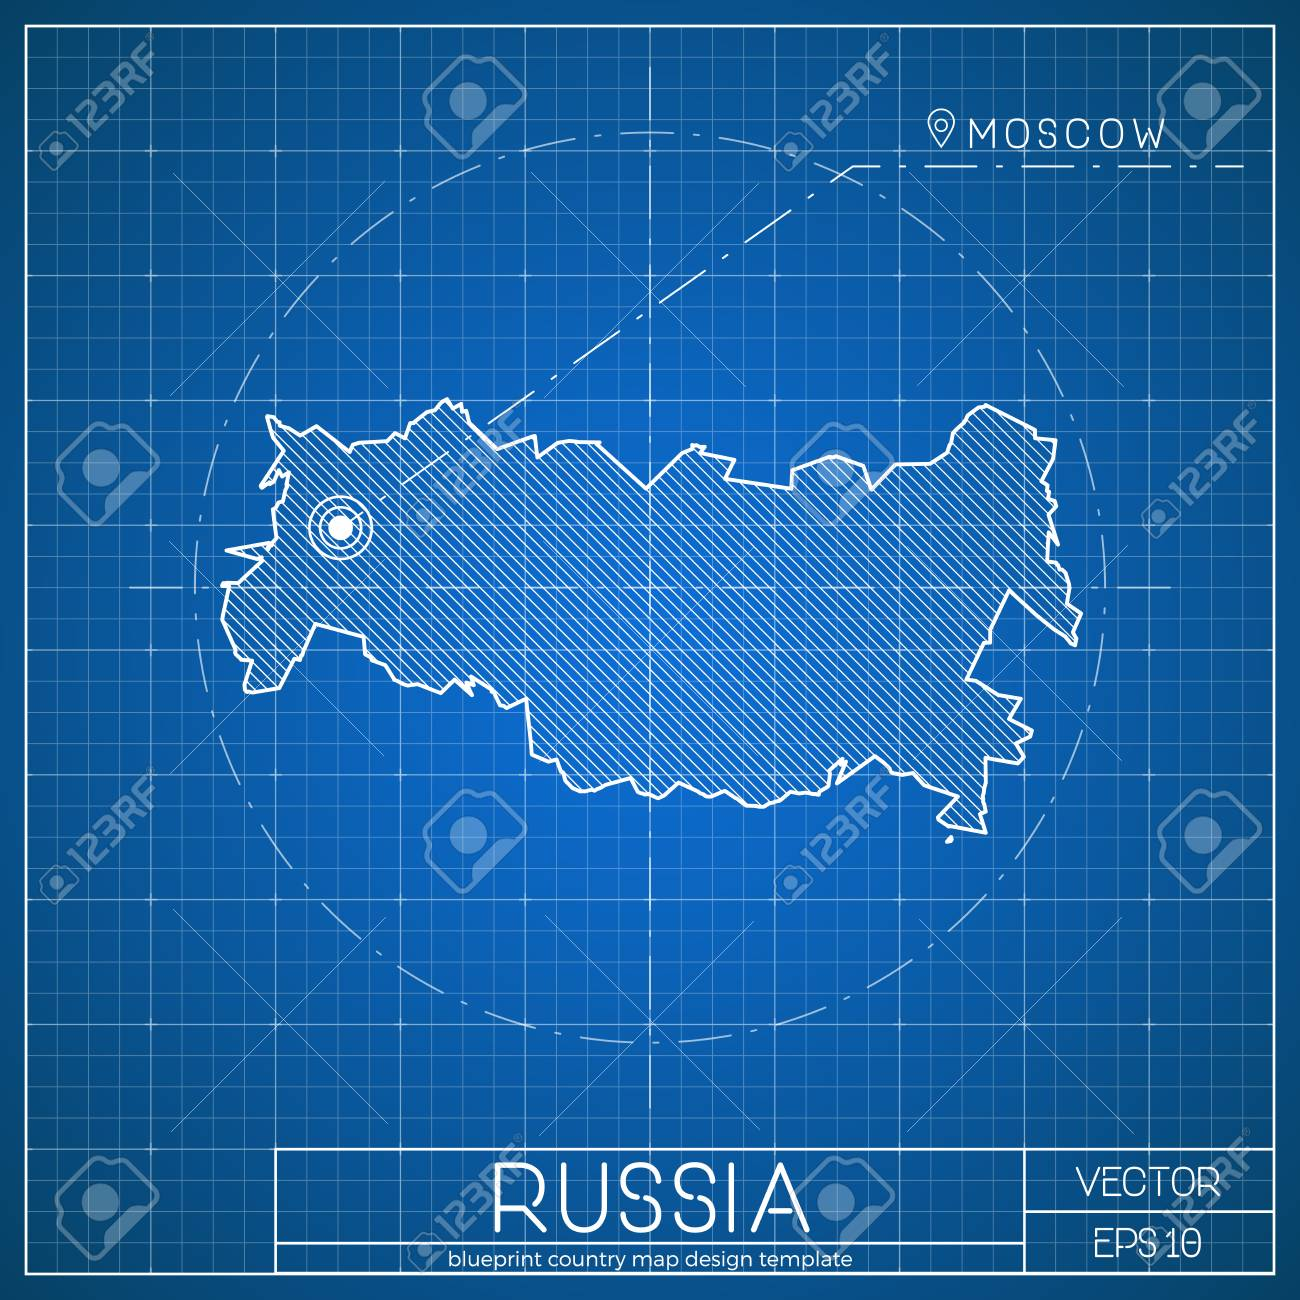 Russia blueprint map template with capital city moscow marked russia blueprint map template with capital city moscow marked on blueprint russian map vector malvernweather Images